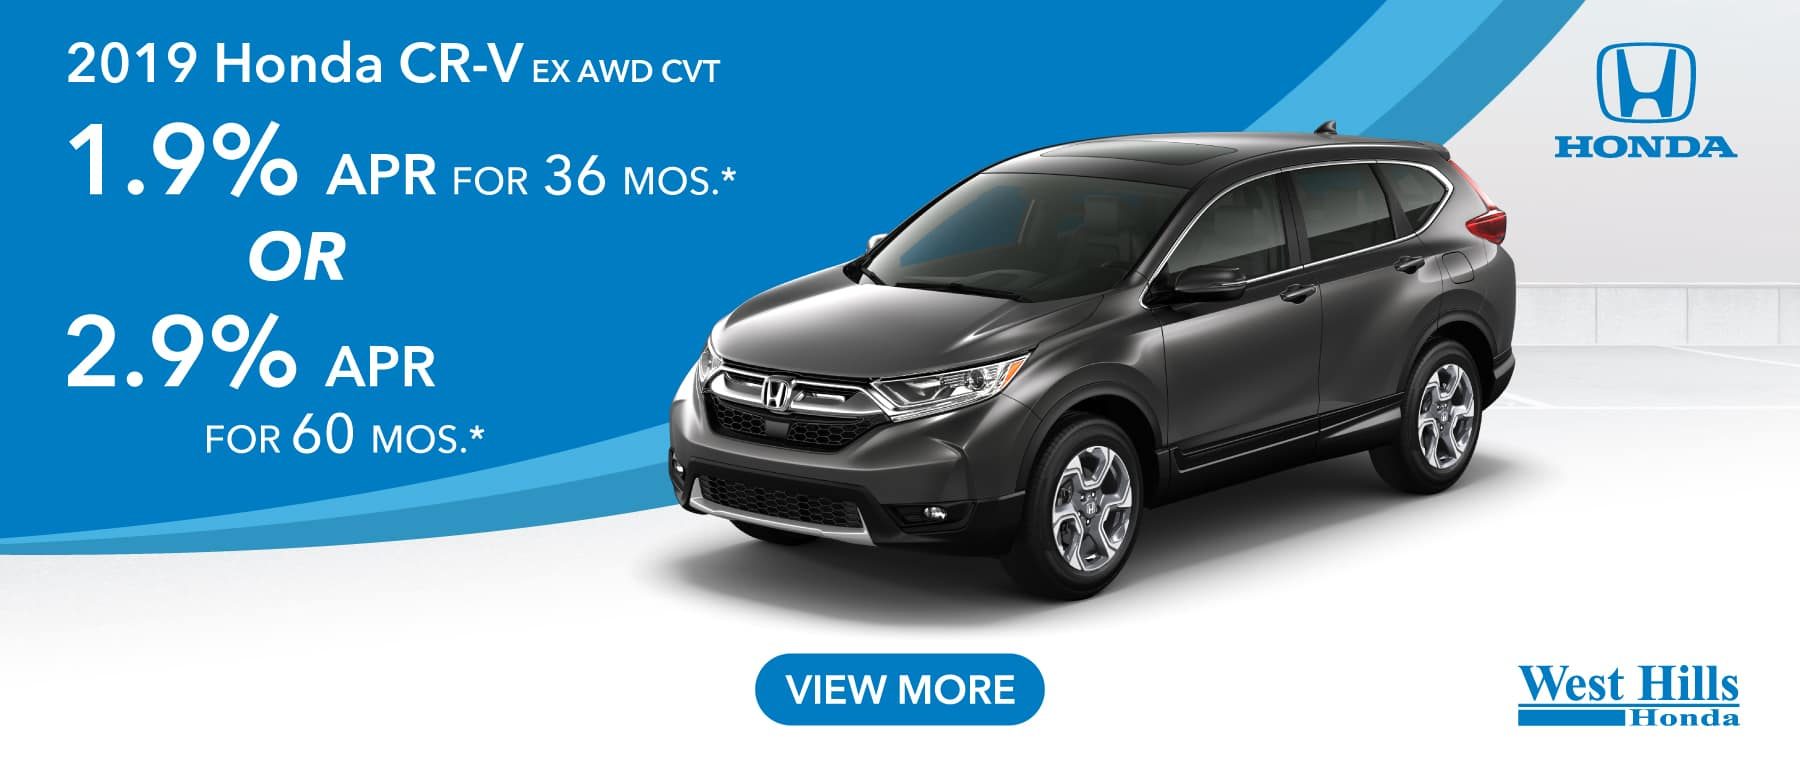 2019 Honda CR-V EX AWD CVT 1.9% for 36 mos. * OR 2.9% for 60 mos. *   * Valid on 2019 Honda CR-V EX AWD CVT. 1.9% for 36 mos. OR 2.9% for 60 mos. Valid on VIN: 5J6RW2H54KA008367, 5J6RW2H59KA009417. MSRP $29,695. No Security deposit required. Subject to credit approval. A minimum of 36 monthly payments required. Residency restrictions apply. Not all buyers will qualify. Down payment and monthly payment may vary. Excludes state and local taxes, tags, registration and title, insurance and dealer charges. A negotiable dealer documentary service fee of up to $150 may be added to the sale price or capitalized cost. Offer expires 7/8/2019.